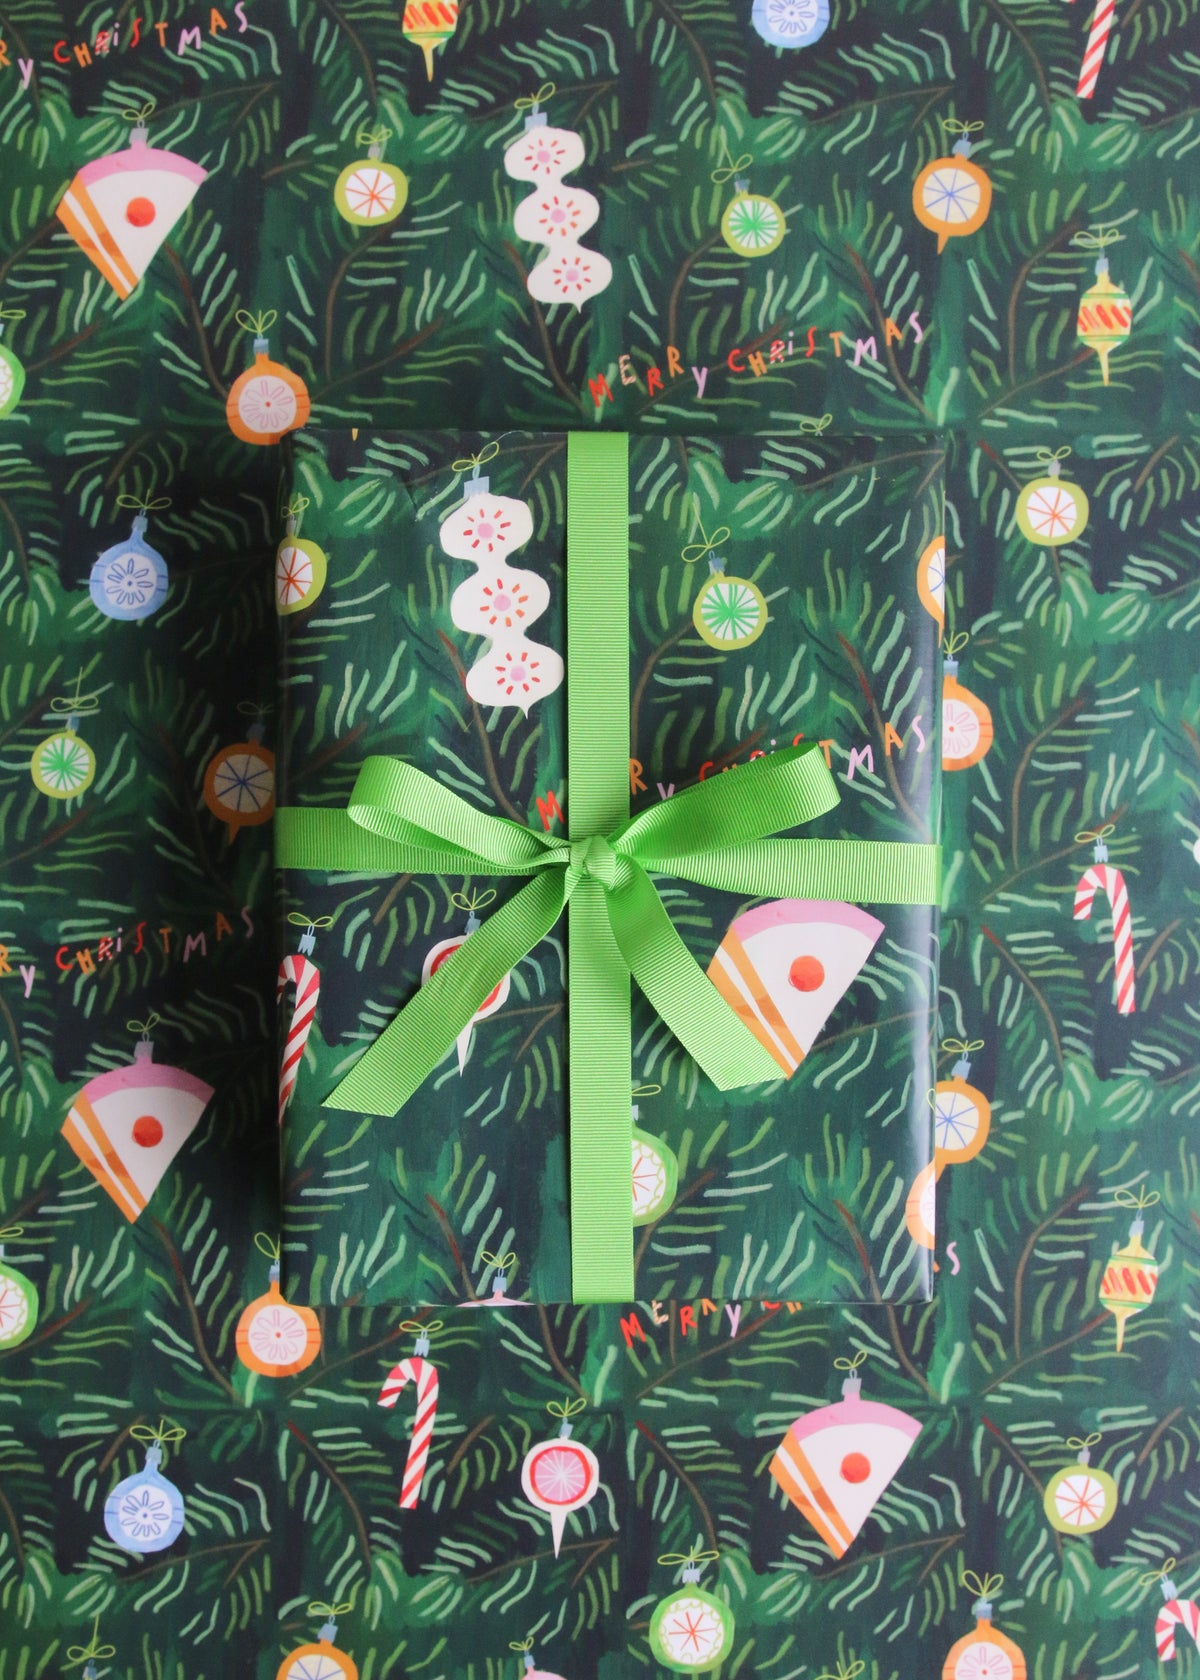 Christmas 'Cake The Halls' Bauble Wrapping Paper